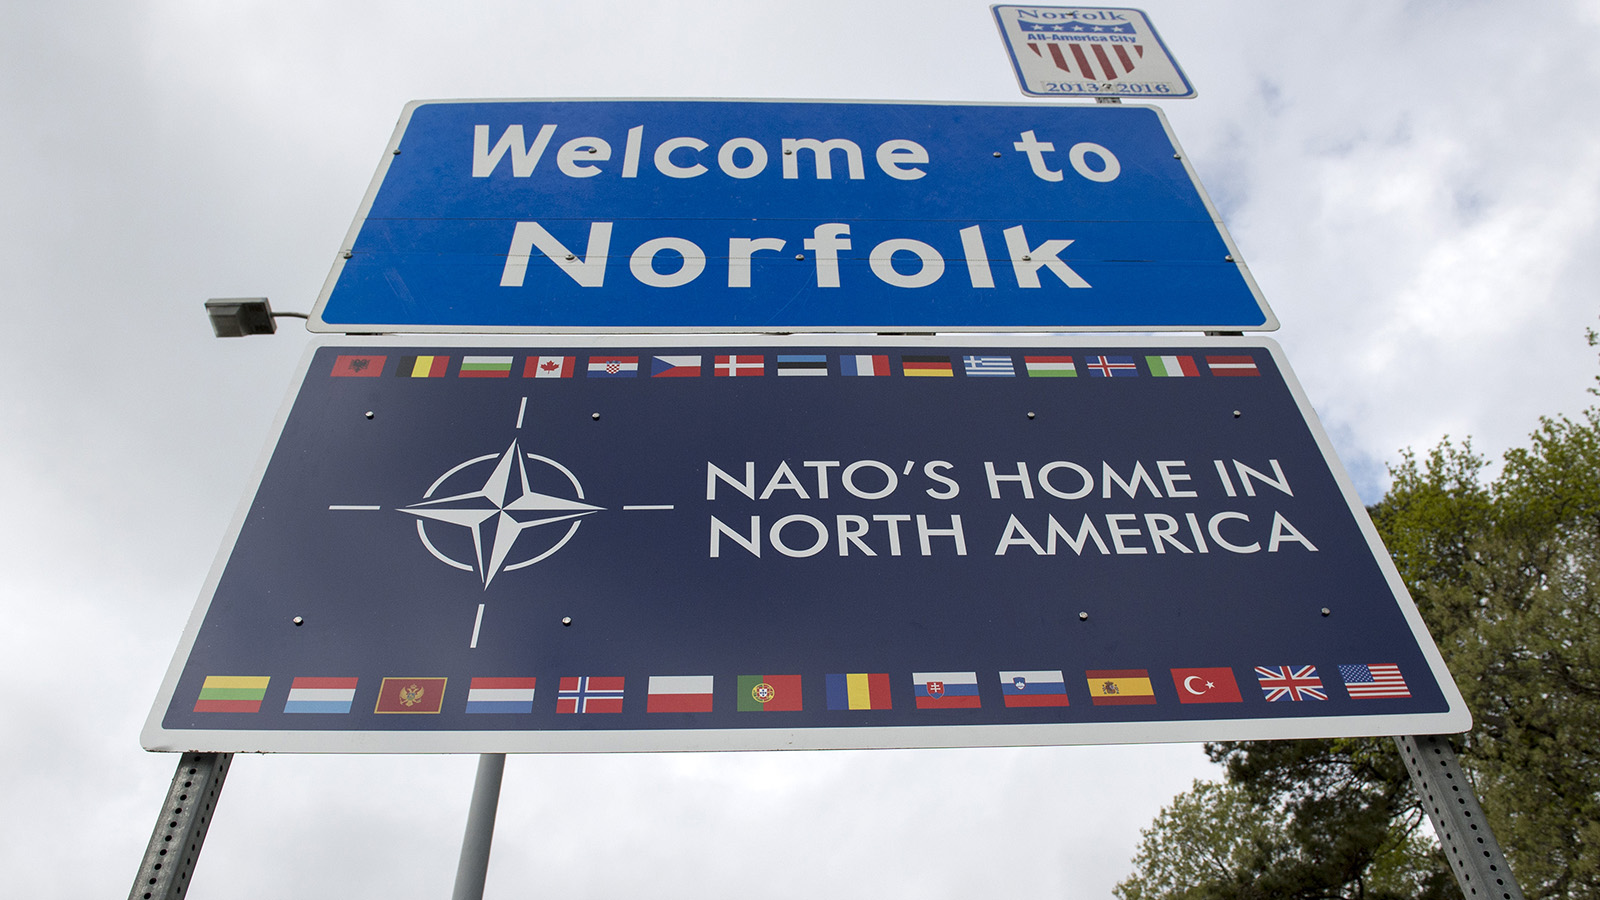 Norfolk - NATO's Home in North America